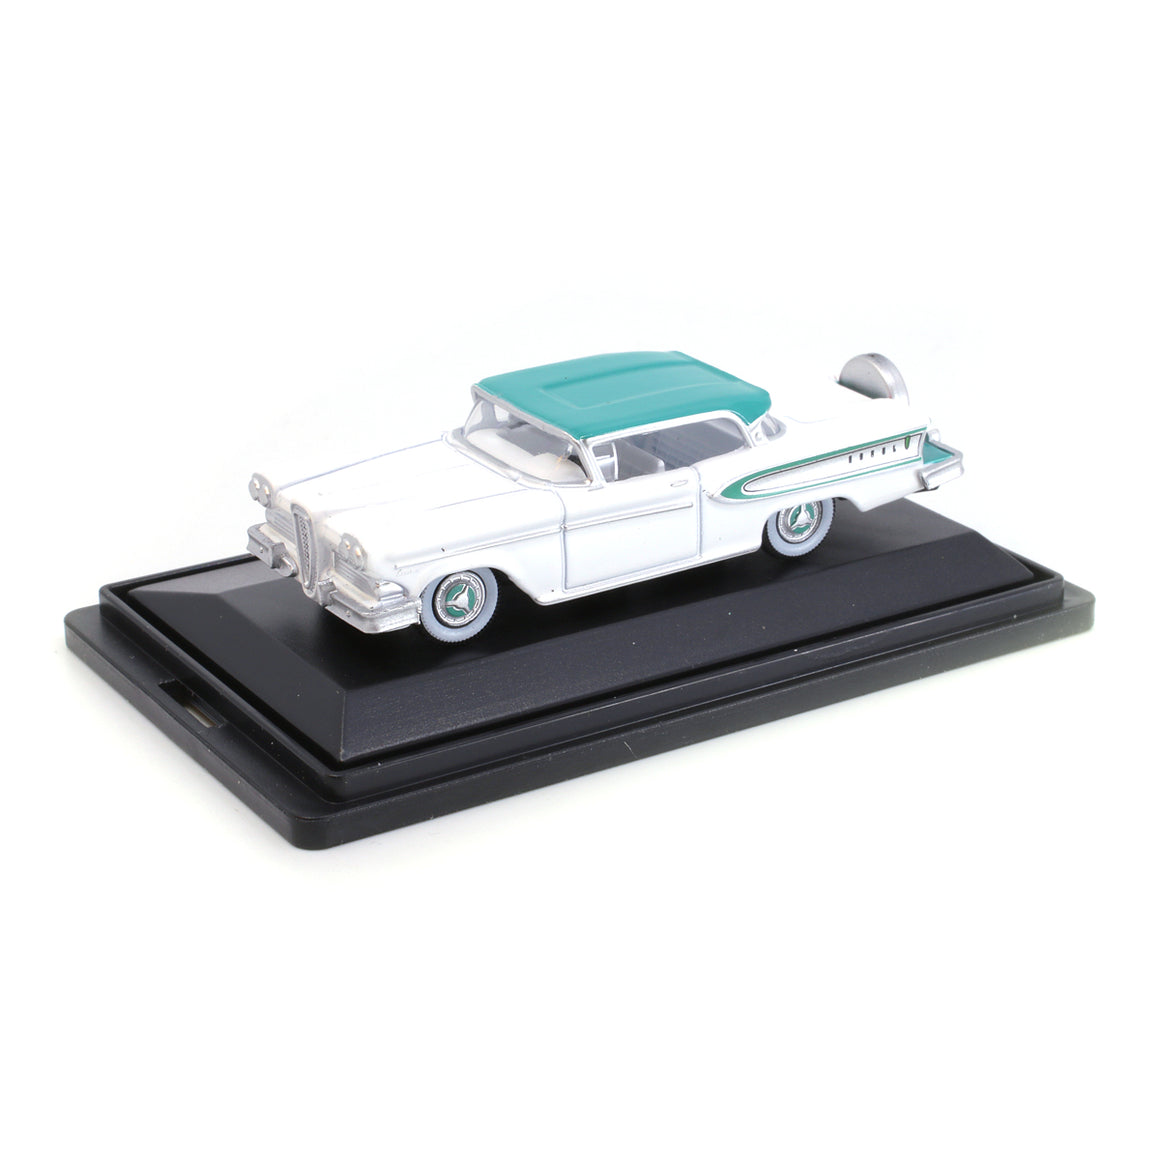 HO Scale: 1958 Ford Edsel Citation - Snow White, Turquoise